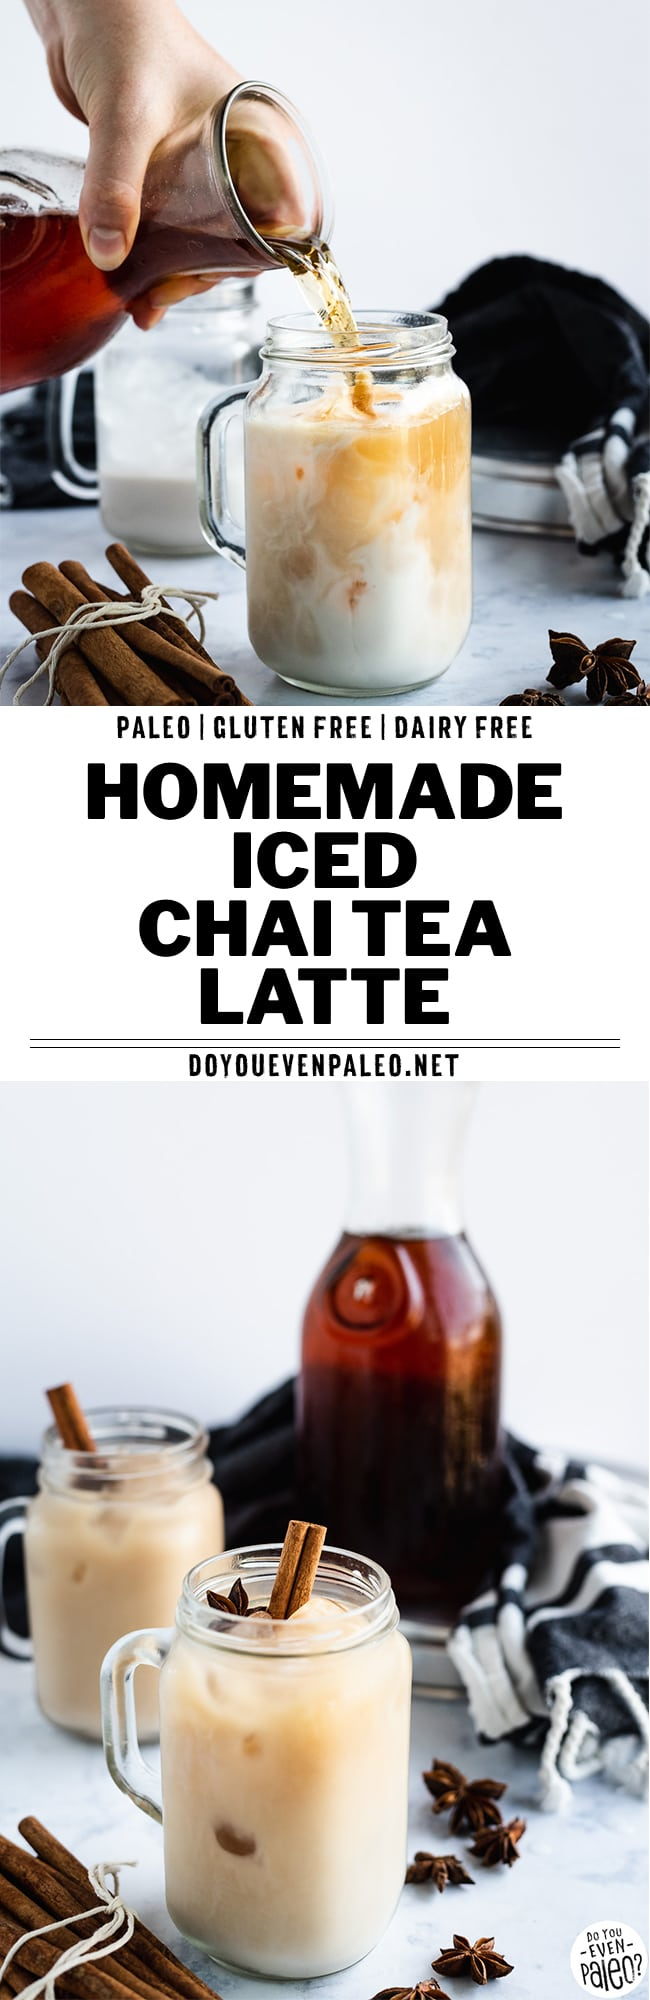 Homemade Iced Chai Tea Latte Recipe